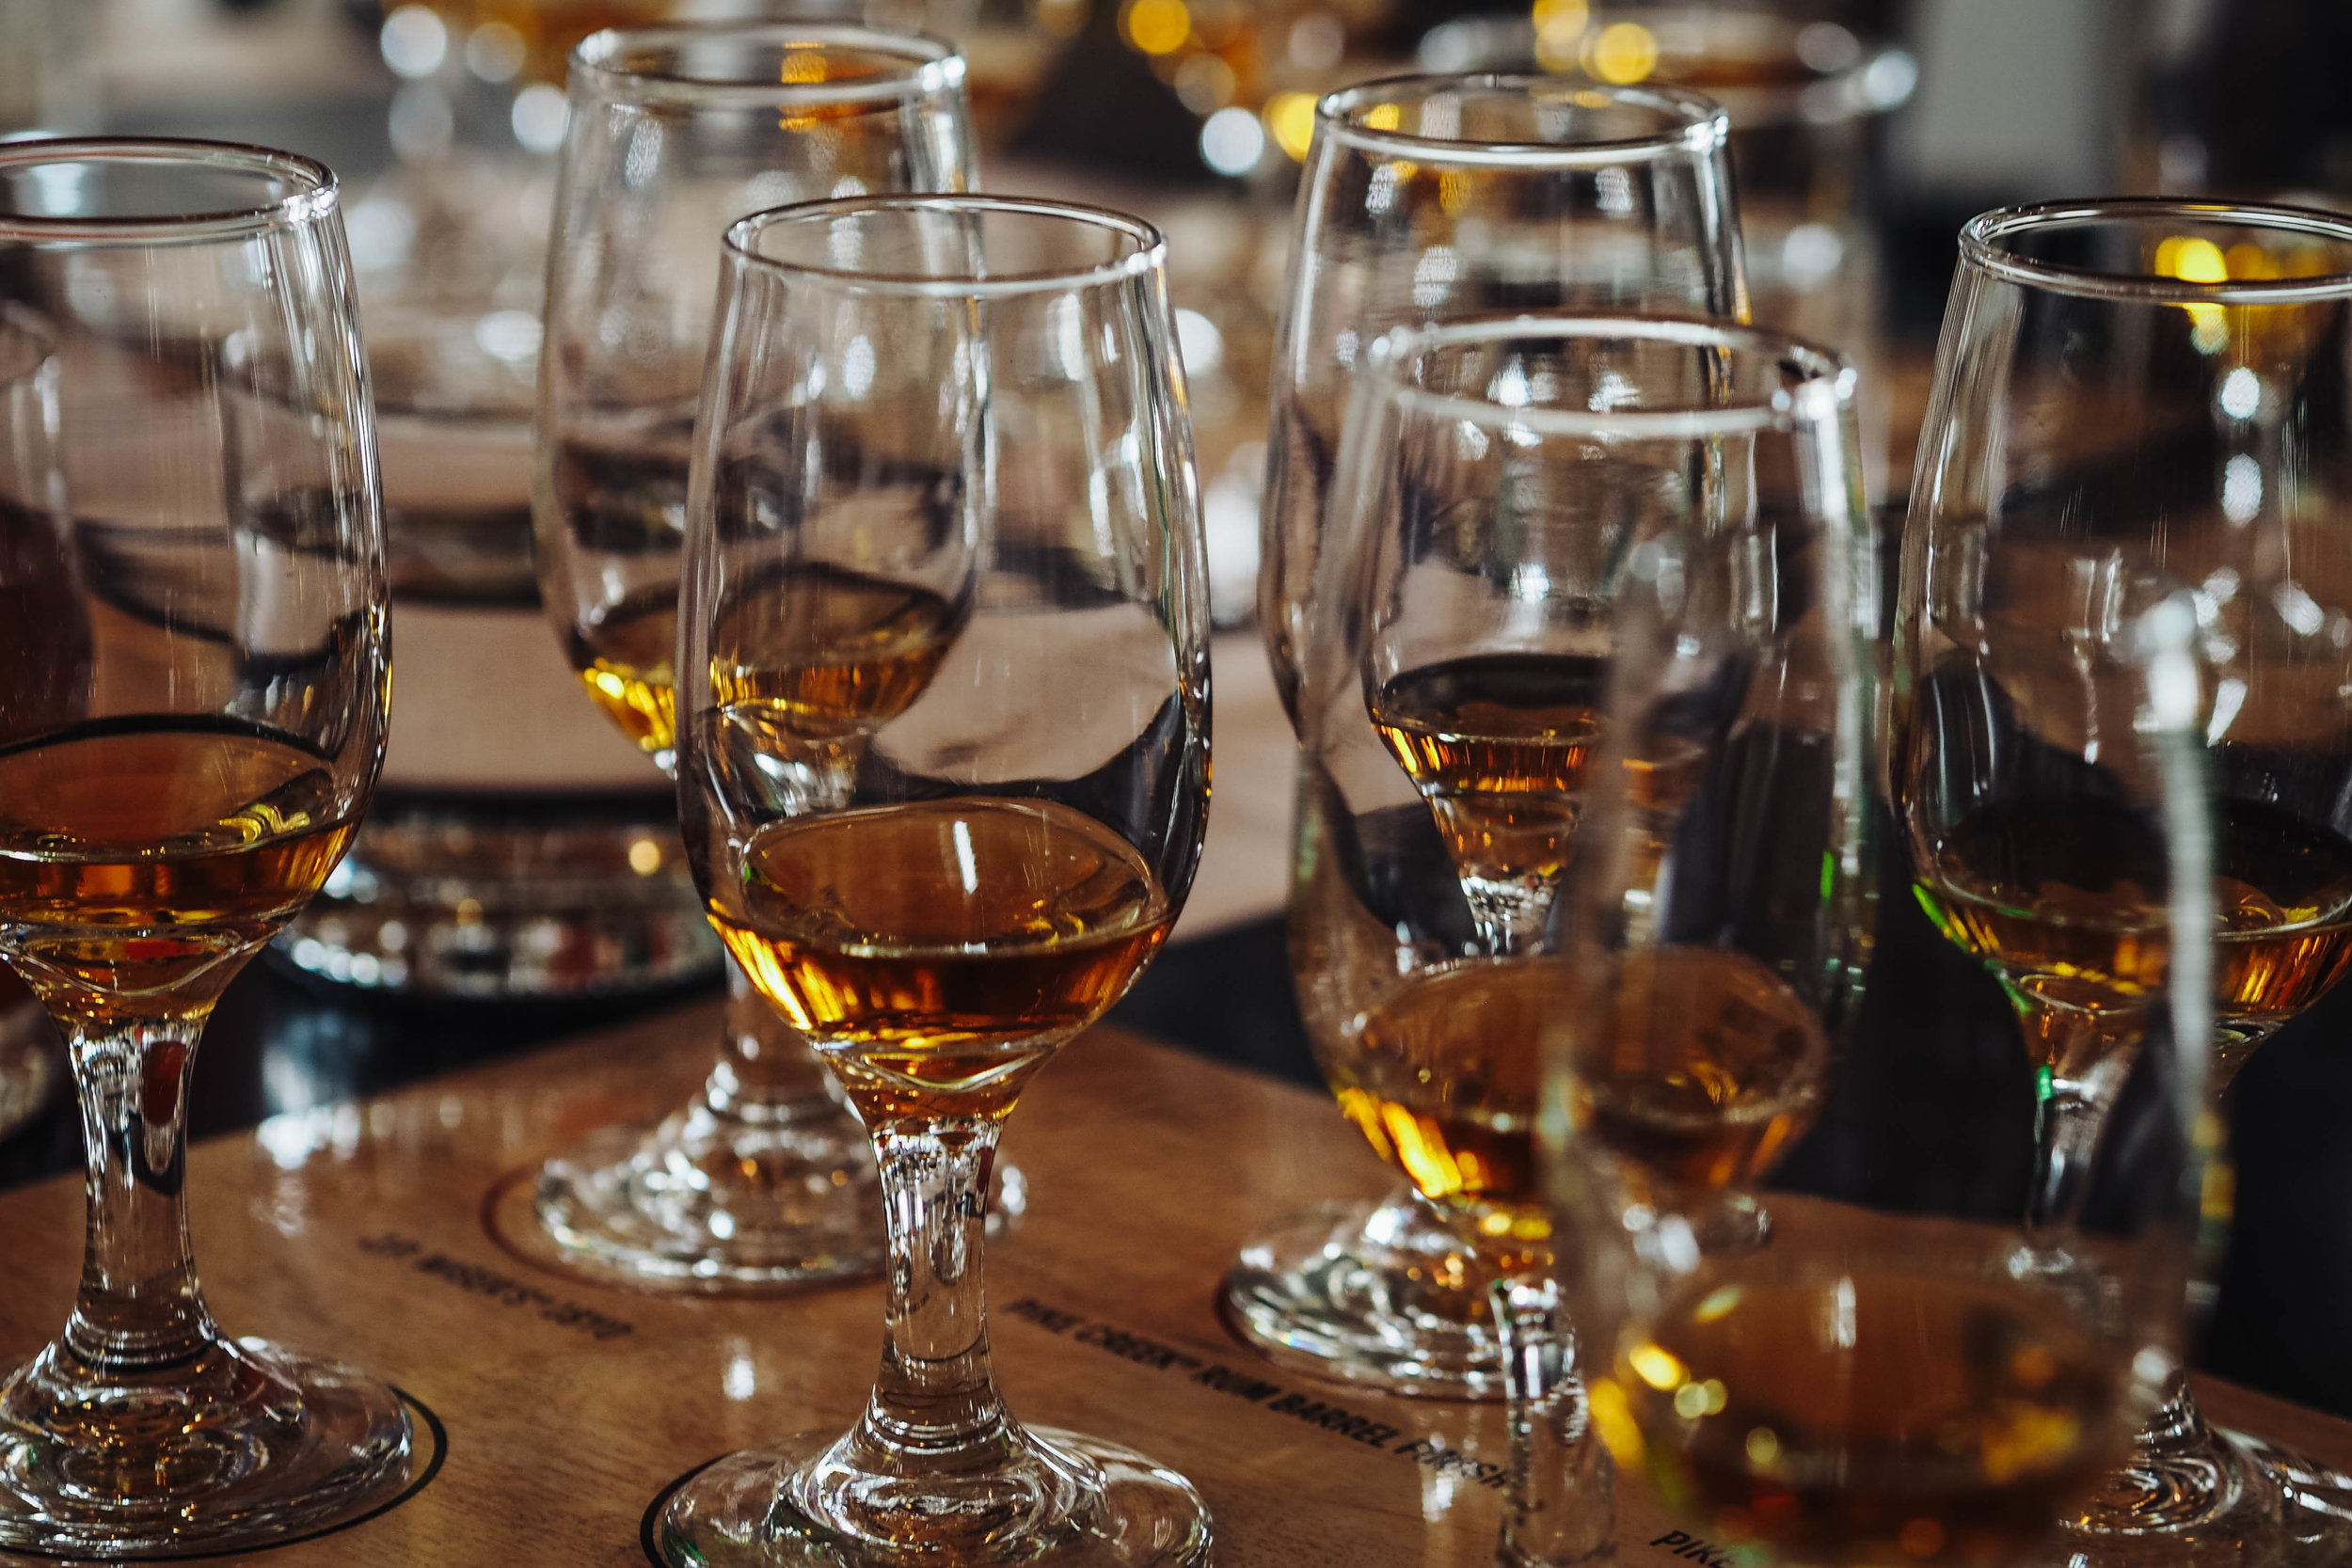 Taking part in a rare whisky tasting led by Ross Hendry, Director of Canadian Craft Whiskey and International.